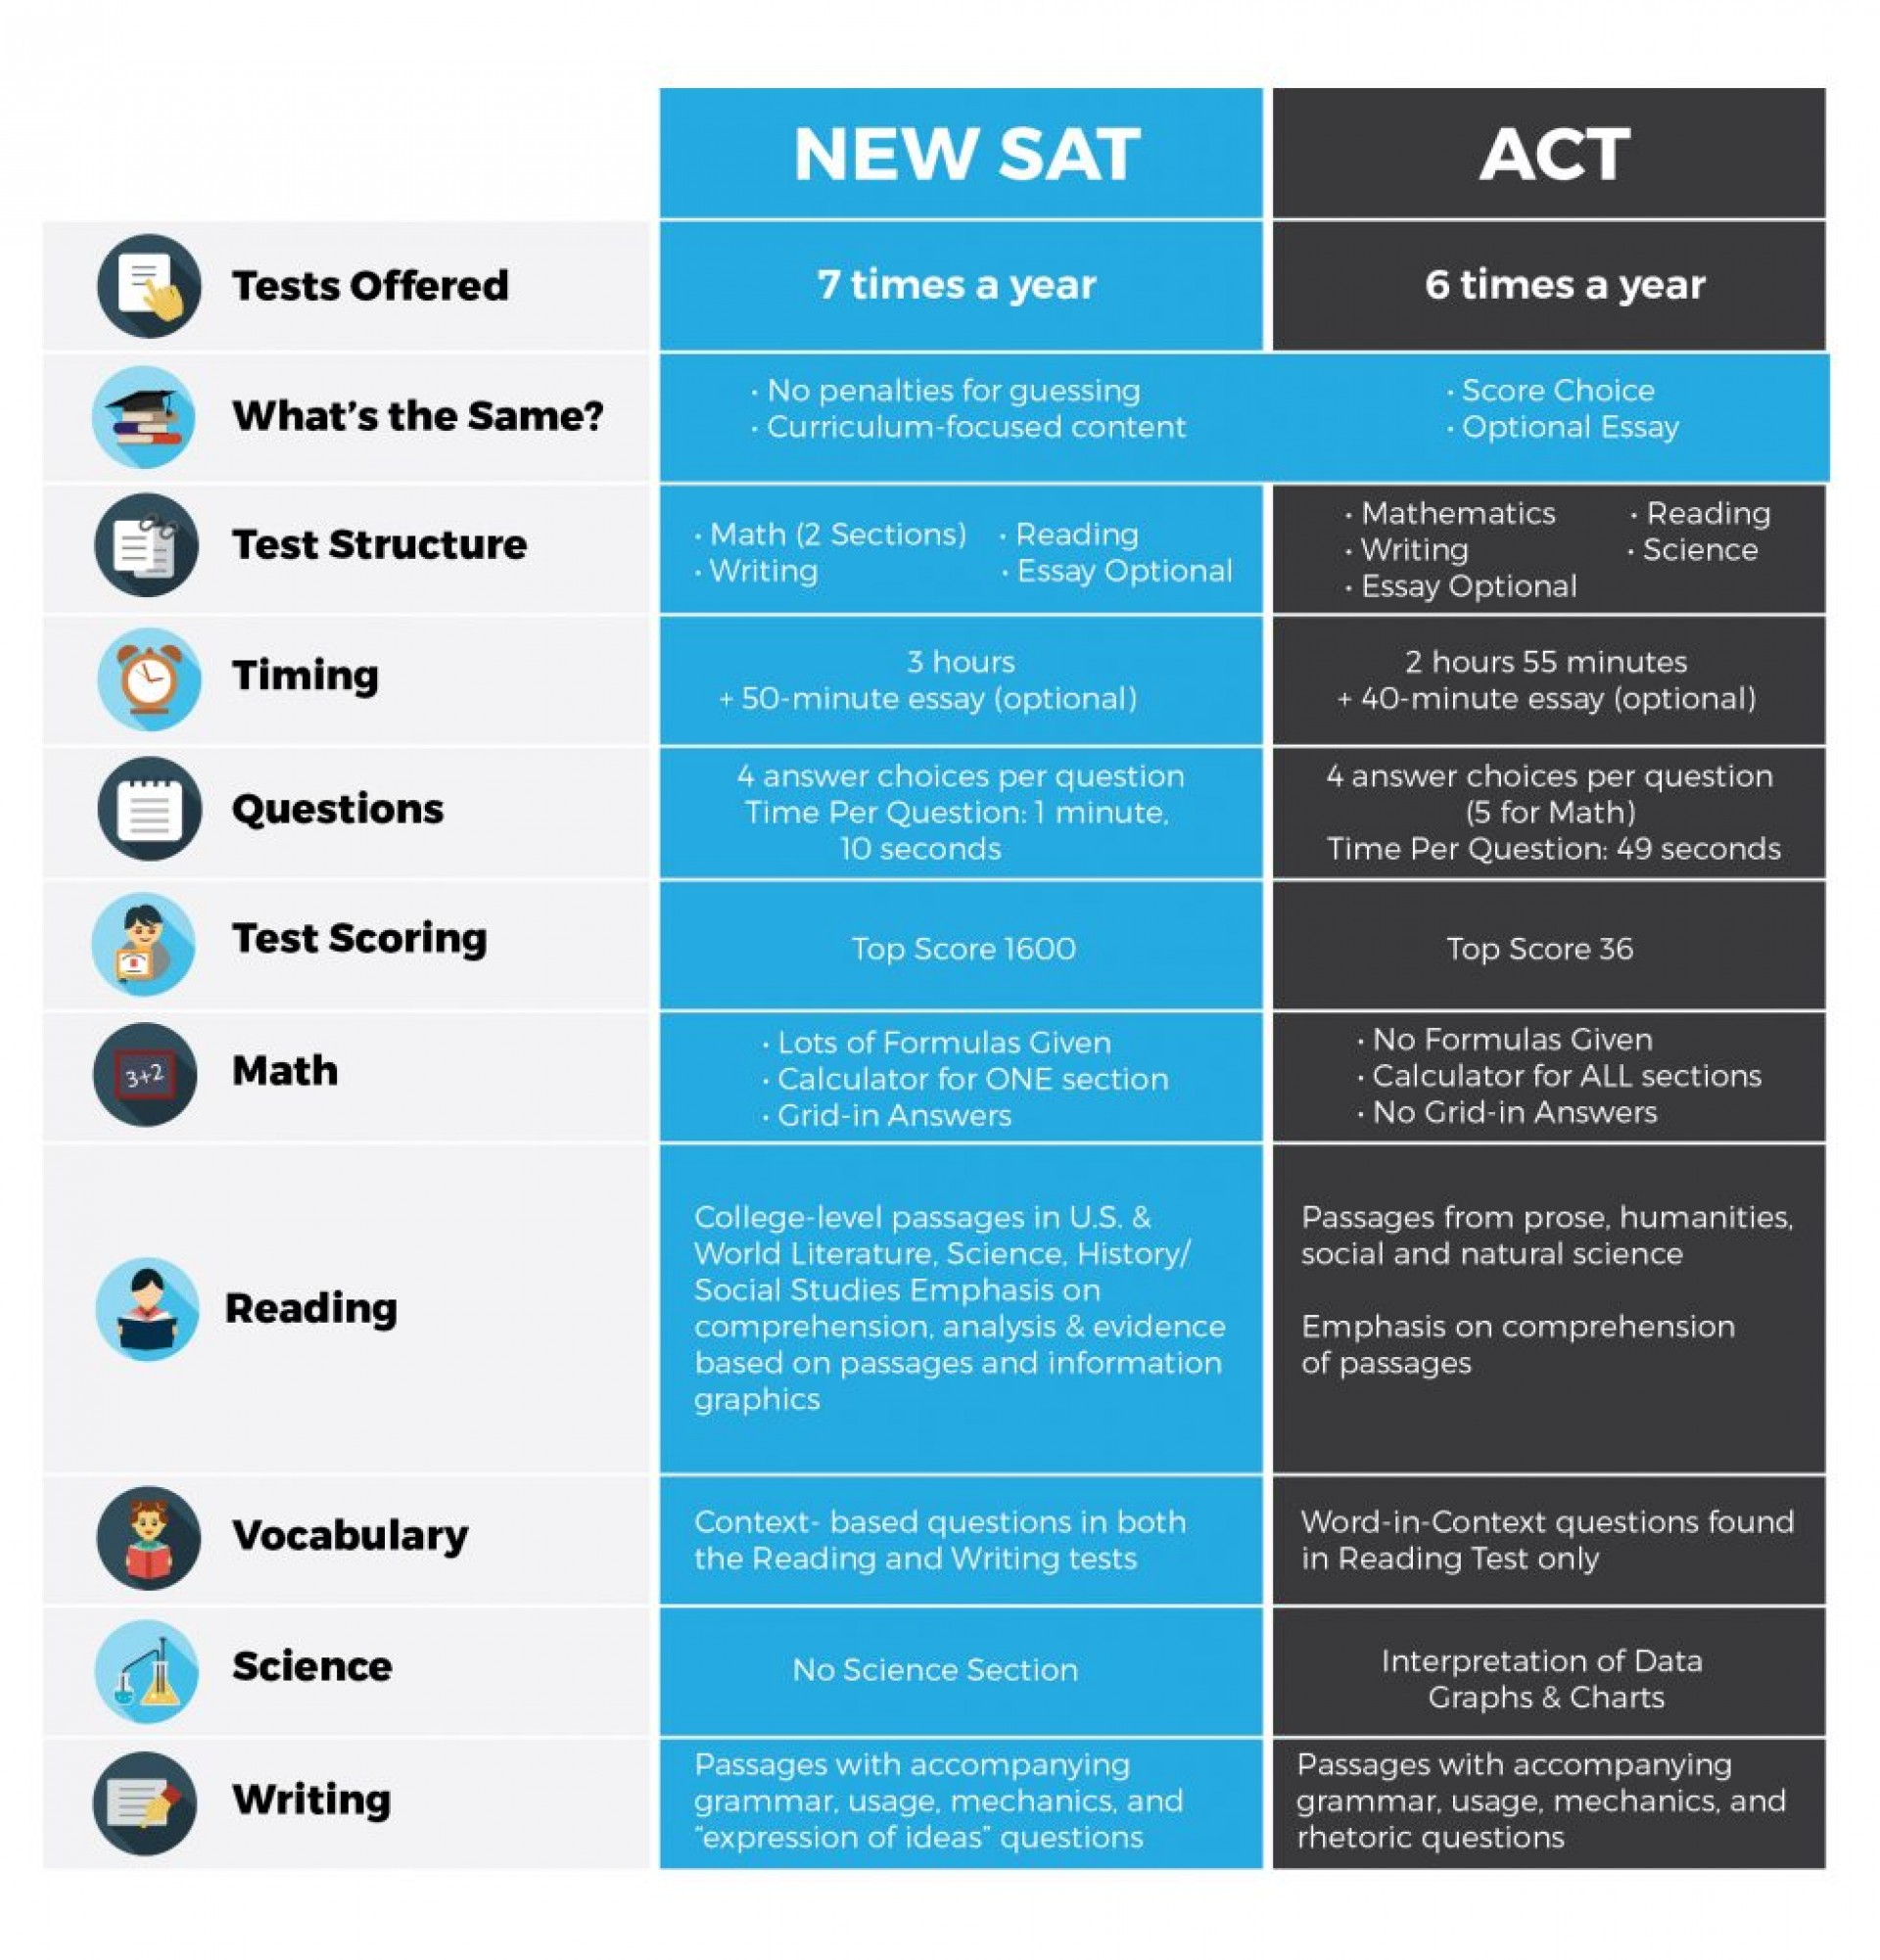 004 Which Colleges Require Sat Essay Example New Vs Act Fantastic Do All Uc 1920